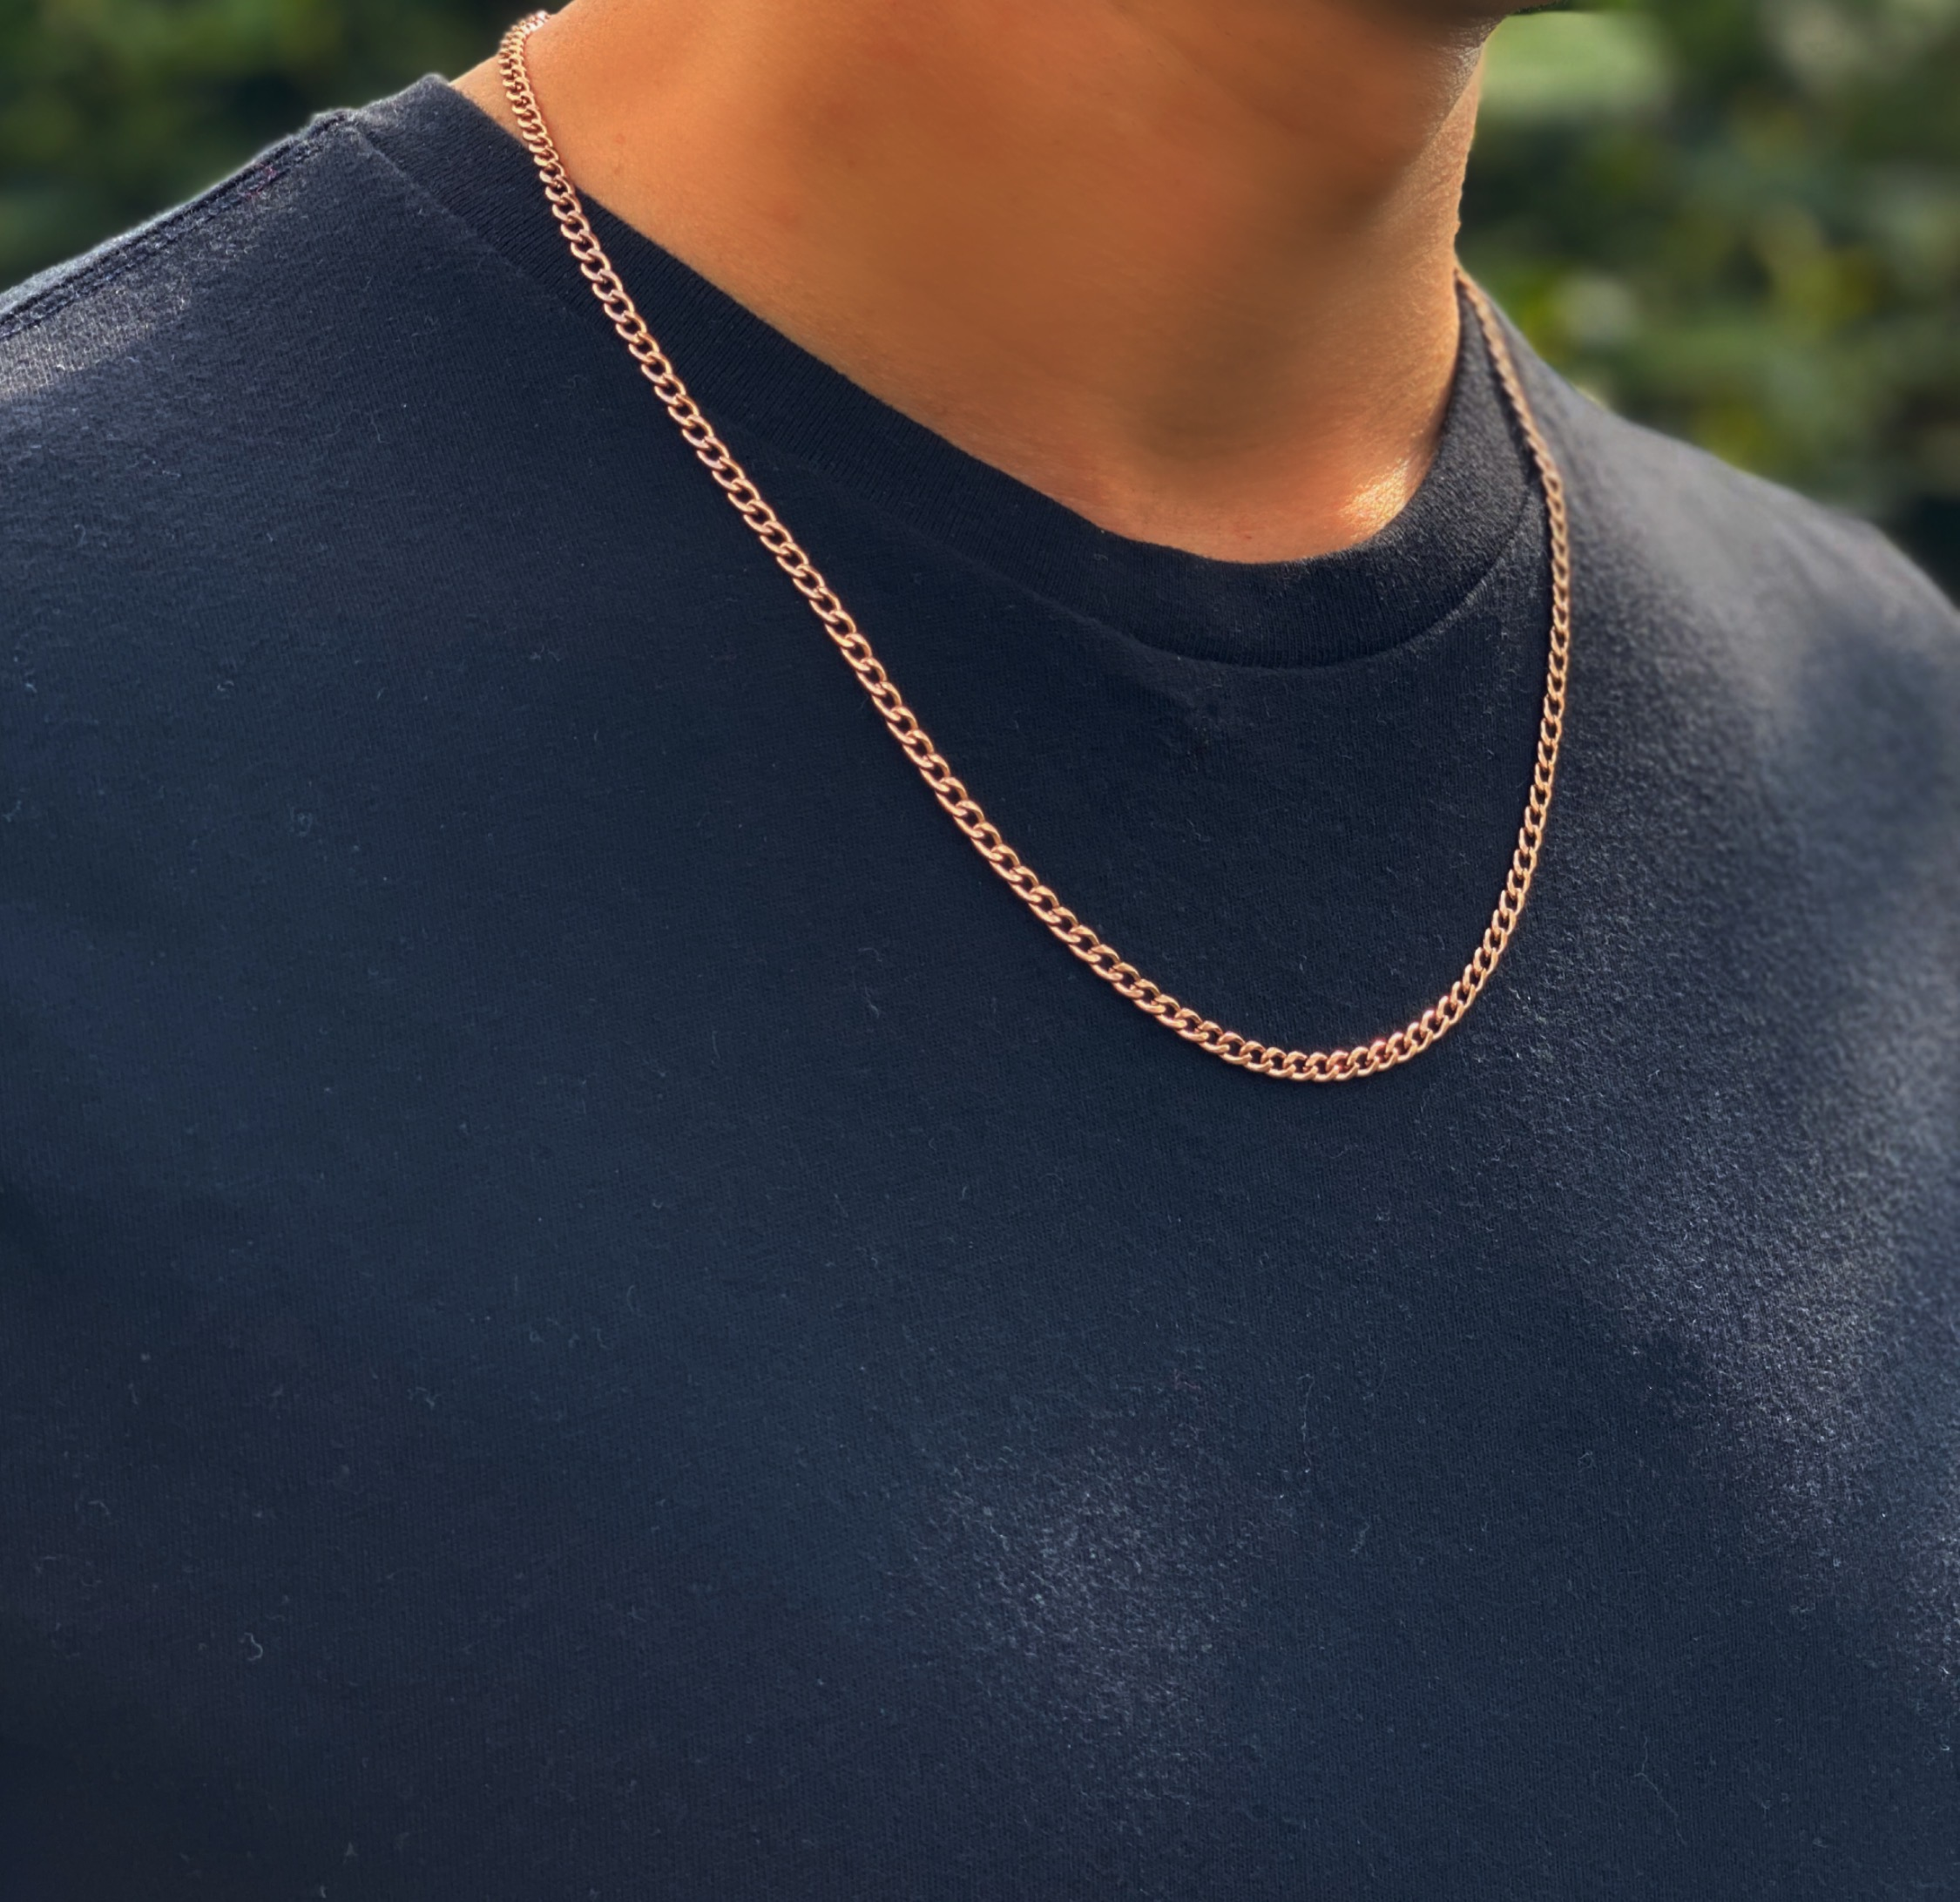 Mens Rose Gold Necklace Chain – Stainless Steel Curb Style, 4mm Width – CubanSkinny©